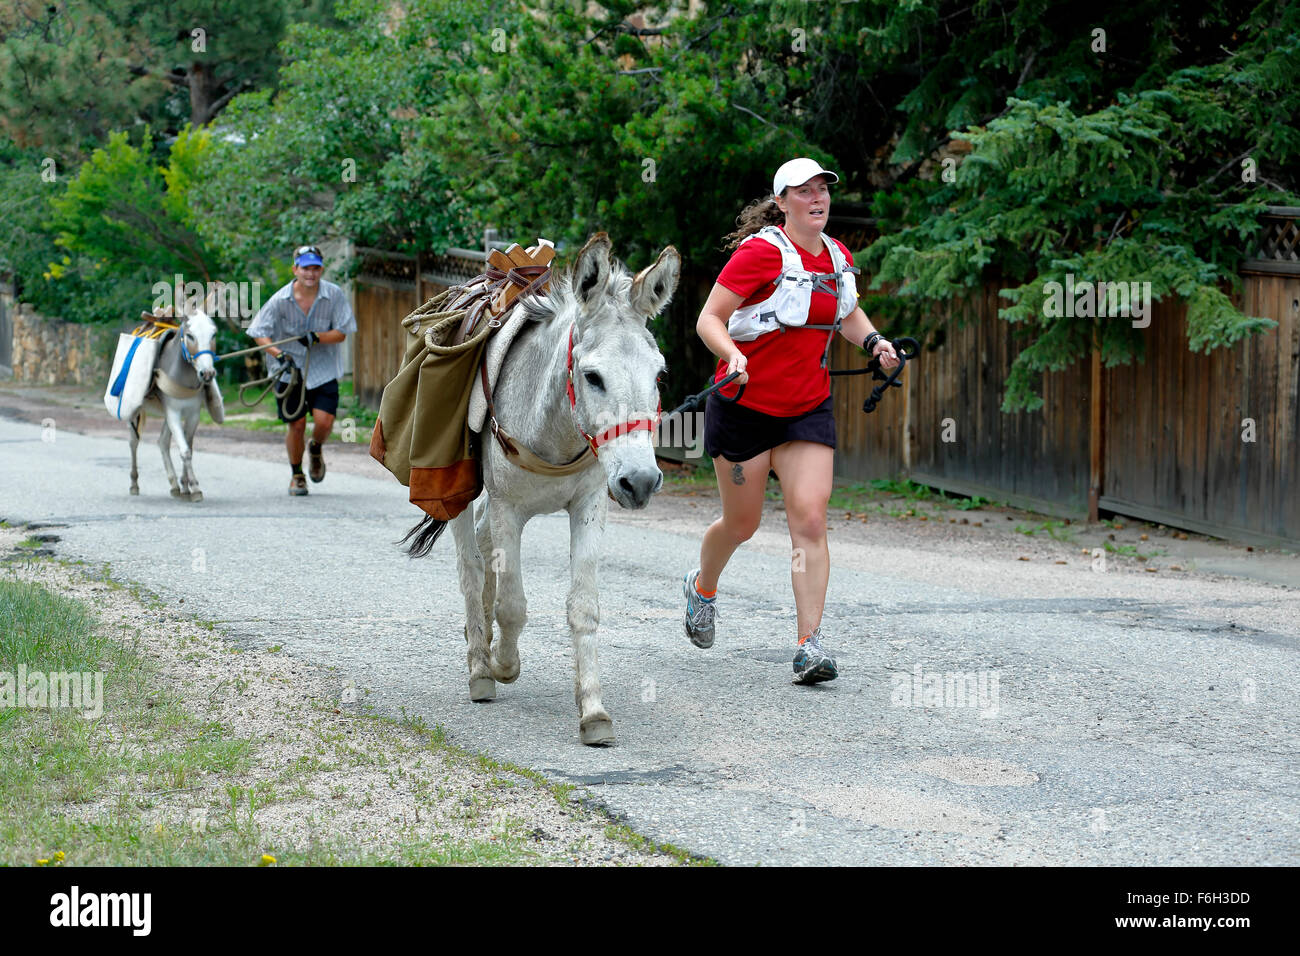 Runners and pack burros, Idaho Springs Tommyknockers Mining Days Festival and Pack Burro Race, Idaho Springs, Colorado - Stock Image